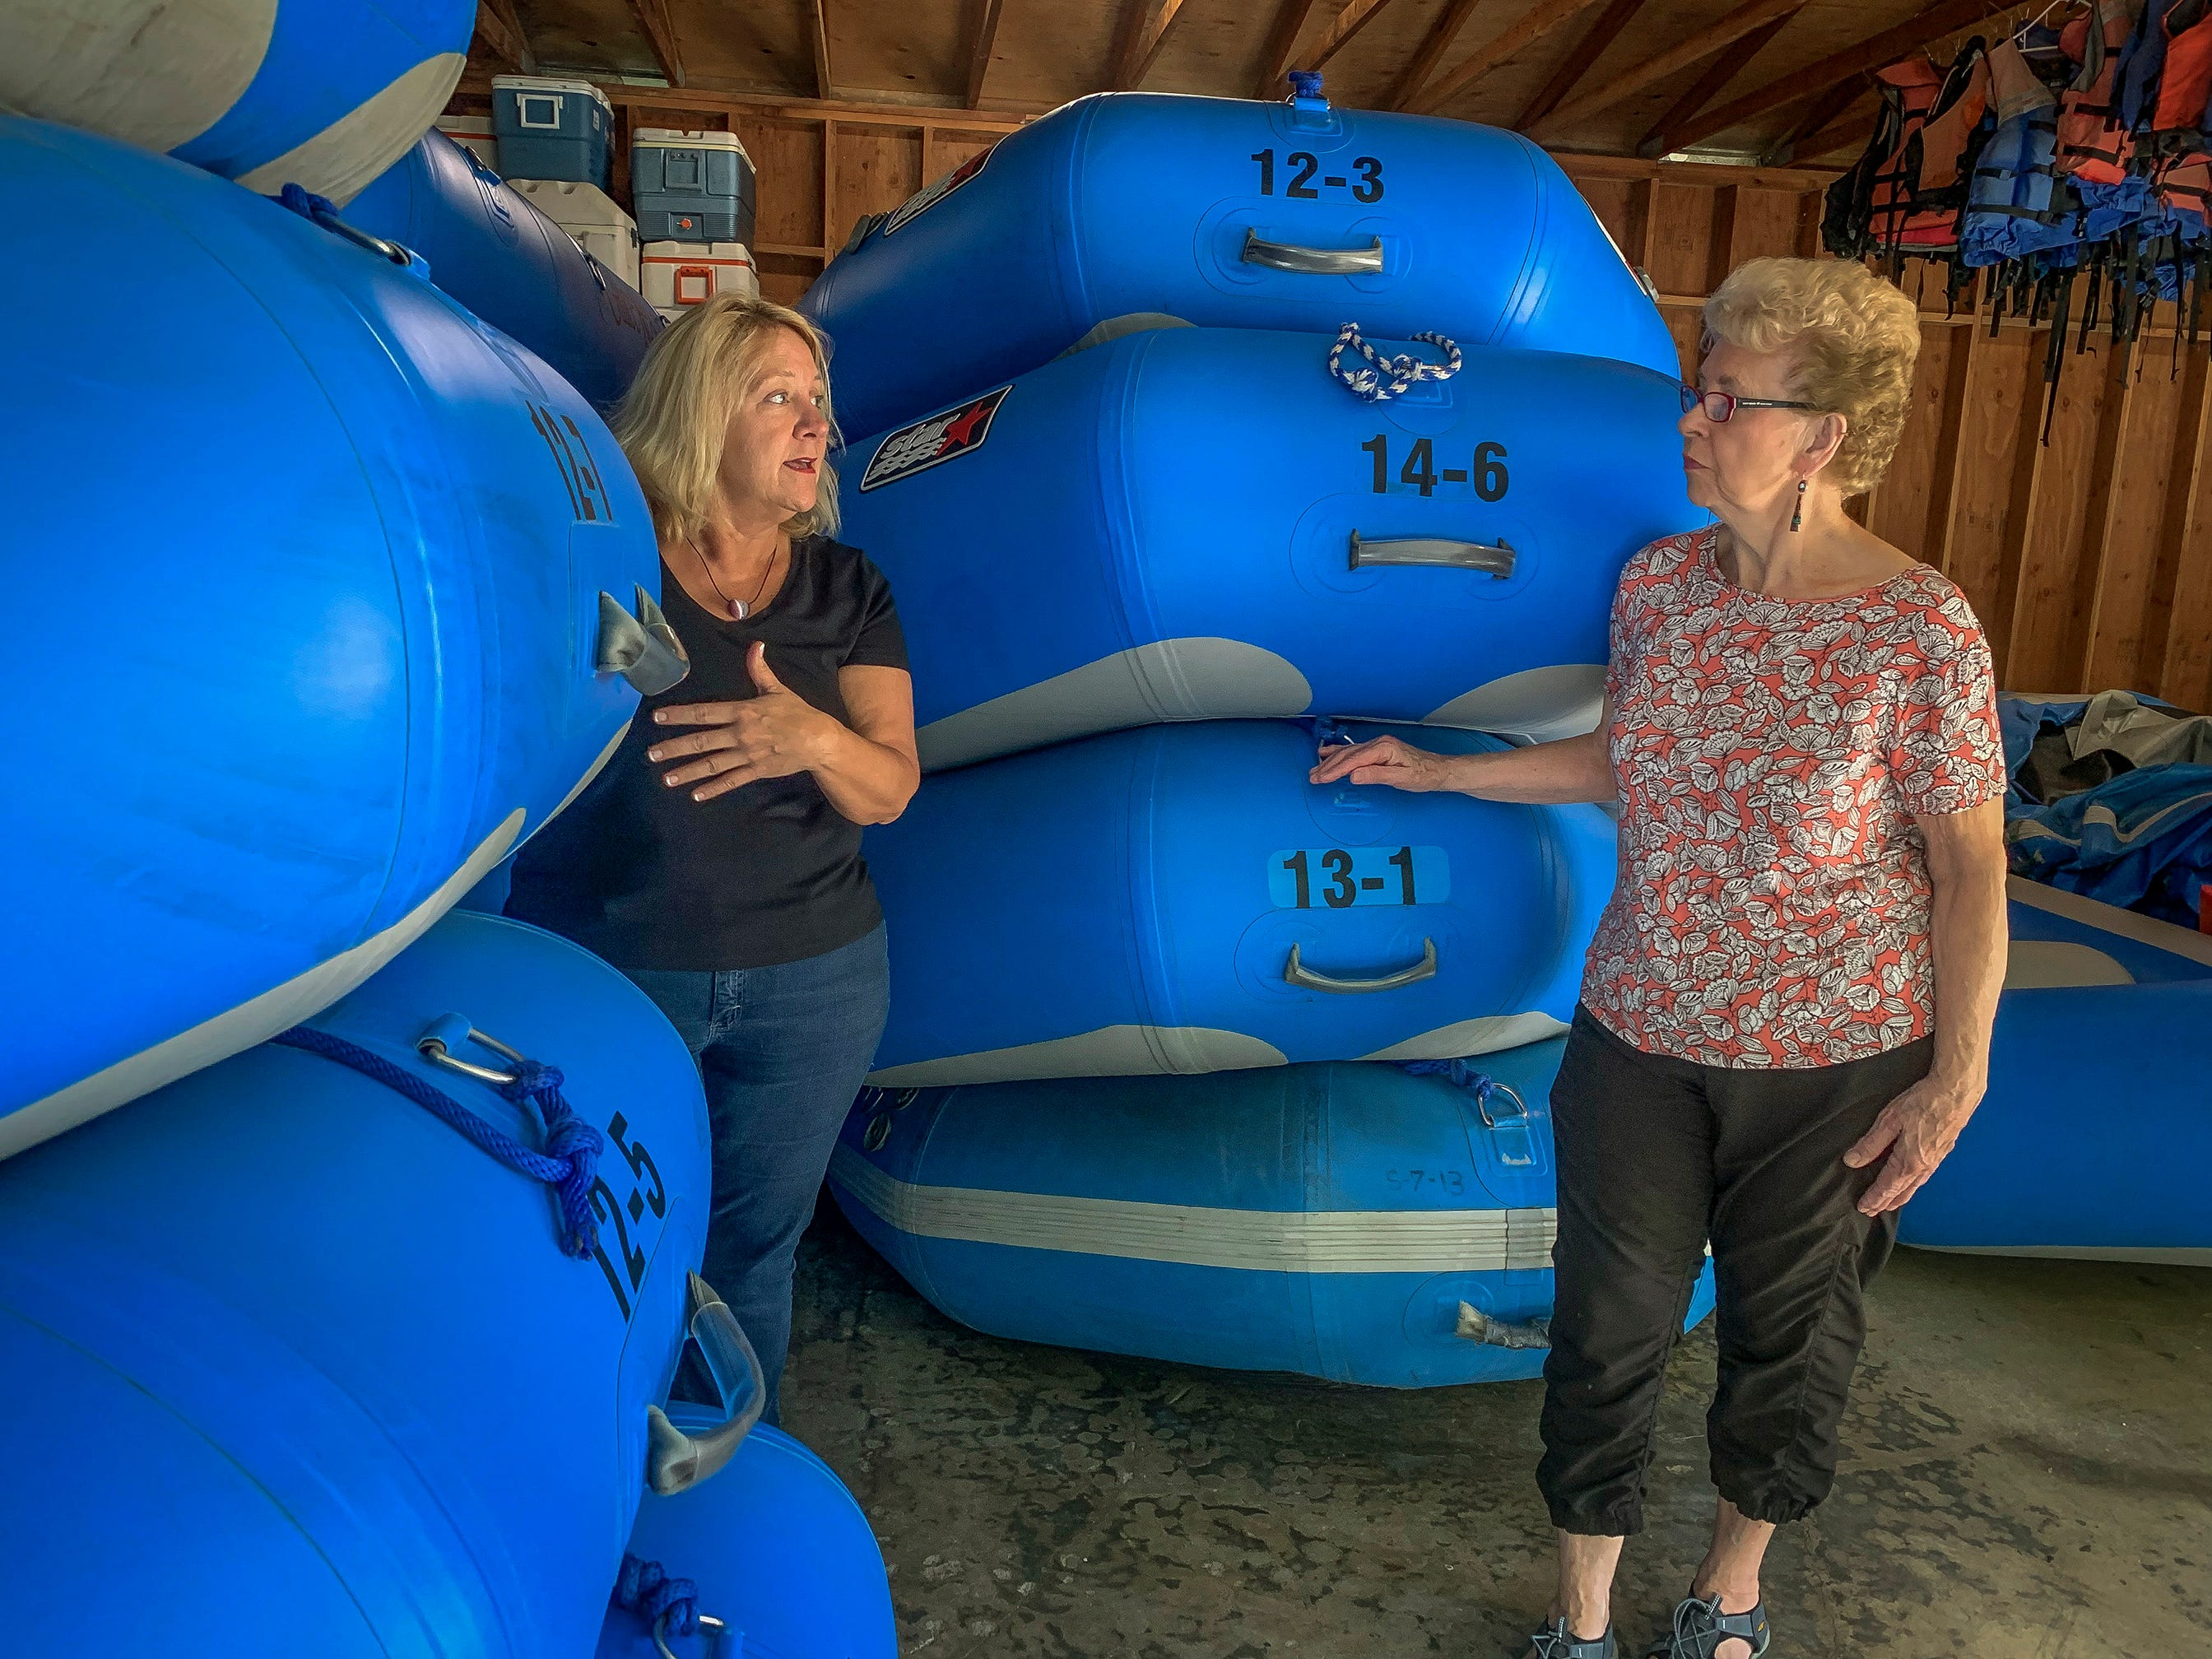 Debbie Thomason, left, and her mom, Mary Lou Thomason, work in the boathouse at the Galice Resort in Merlin, Oregon getting rafts ready for the beginning of their season along the Rogue River. The resort, owned by the Thomason family since the early 1980s, had to close its doors for over a week due to threat from wildfires in 2018. The popular destination lost revenue and had to lay off employees due to the closure.